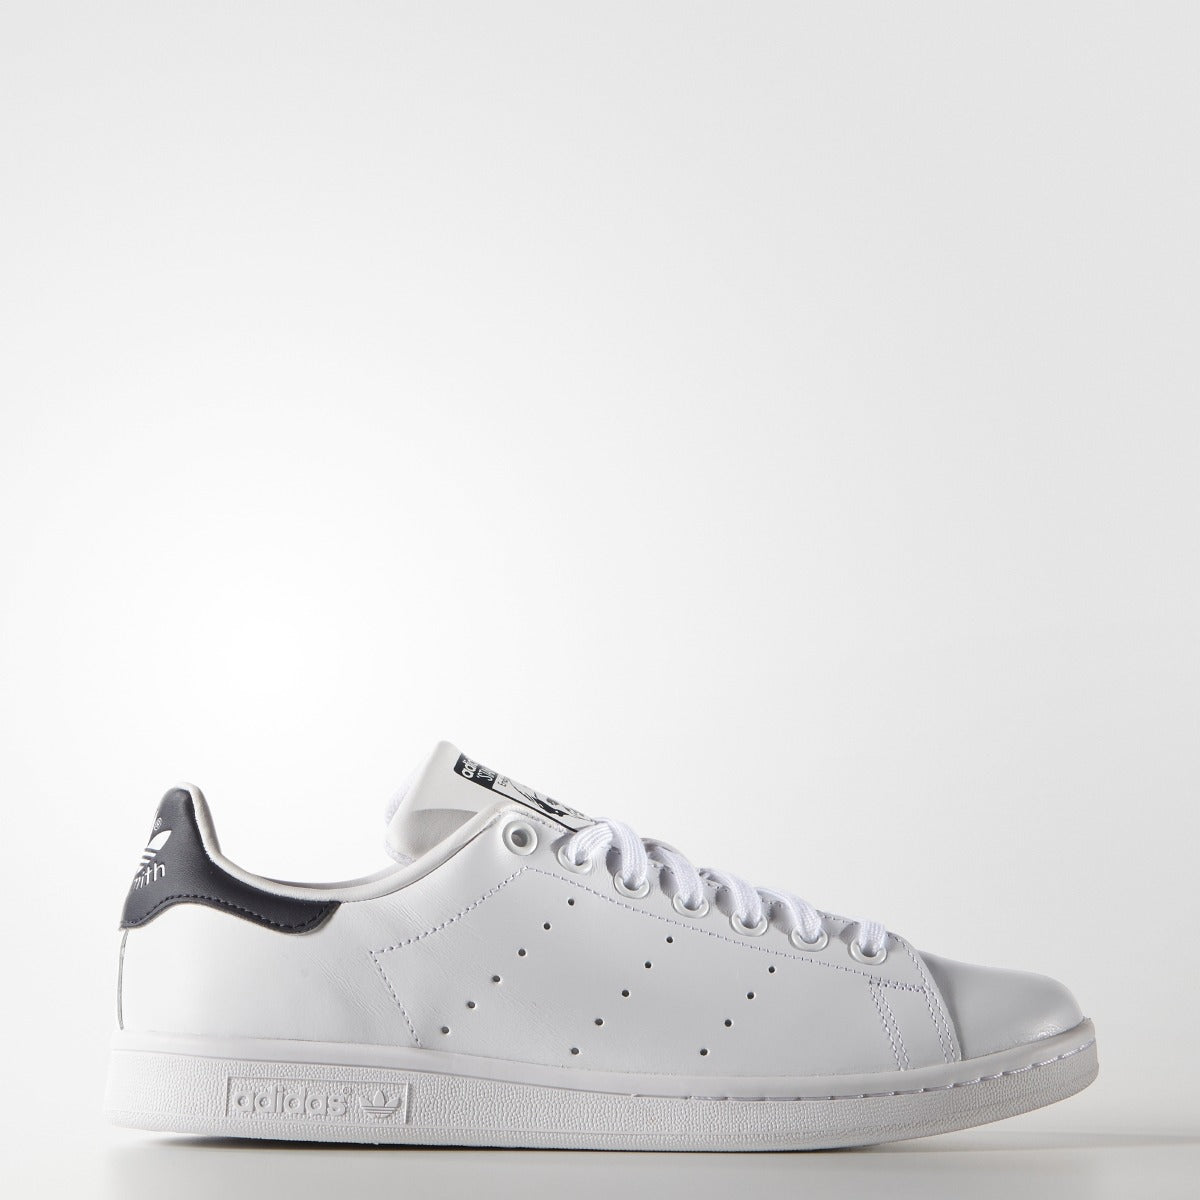 a4eb36bb4bbe3 Men s adidas Originals Stan Smith White Navy.  75.00